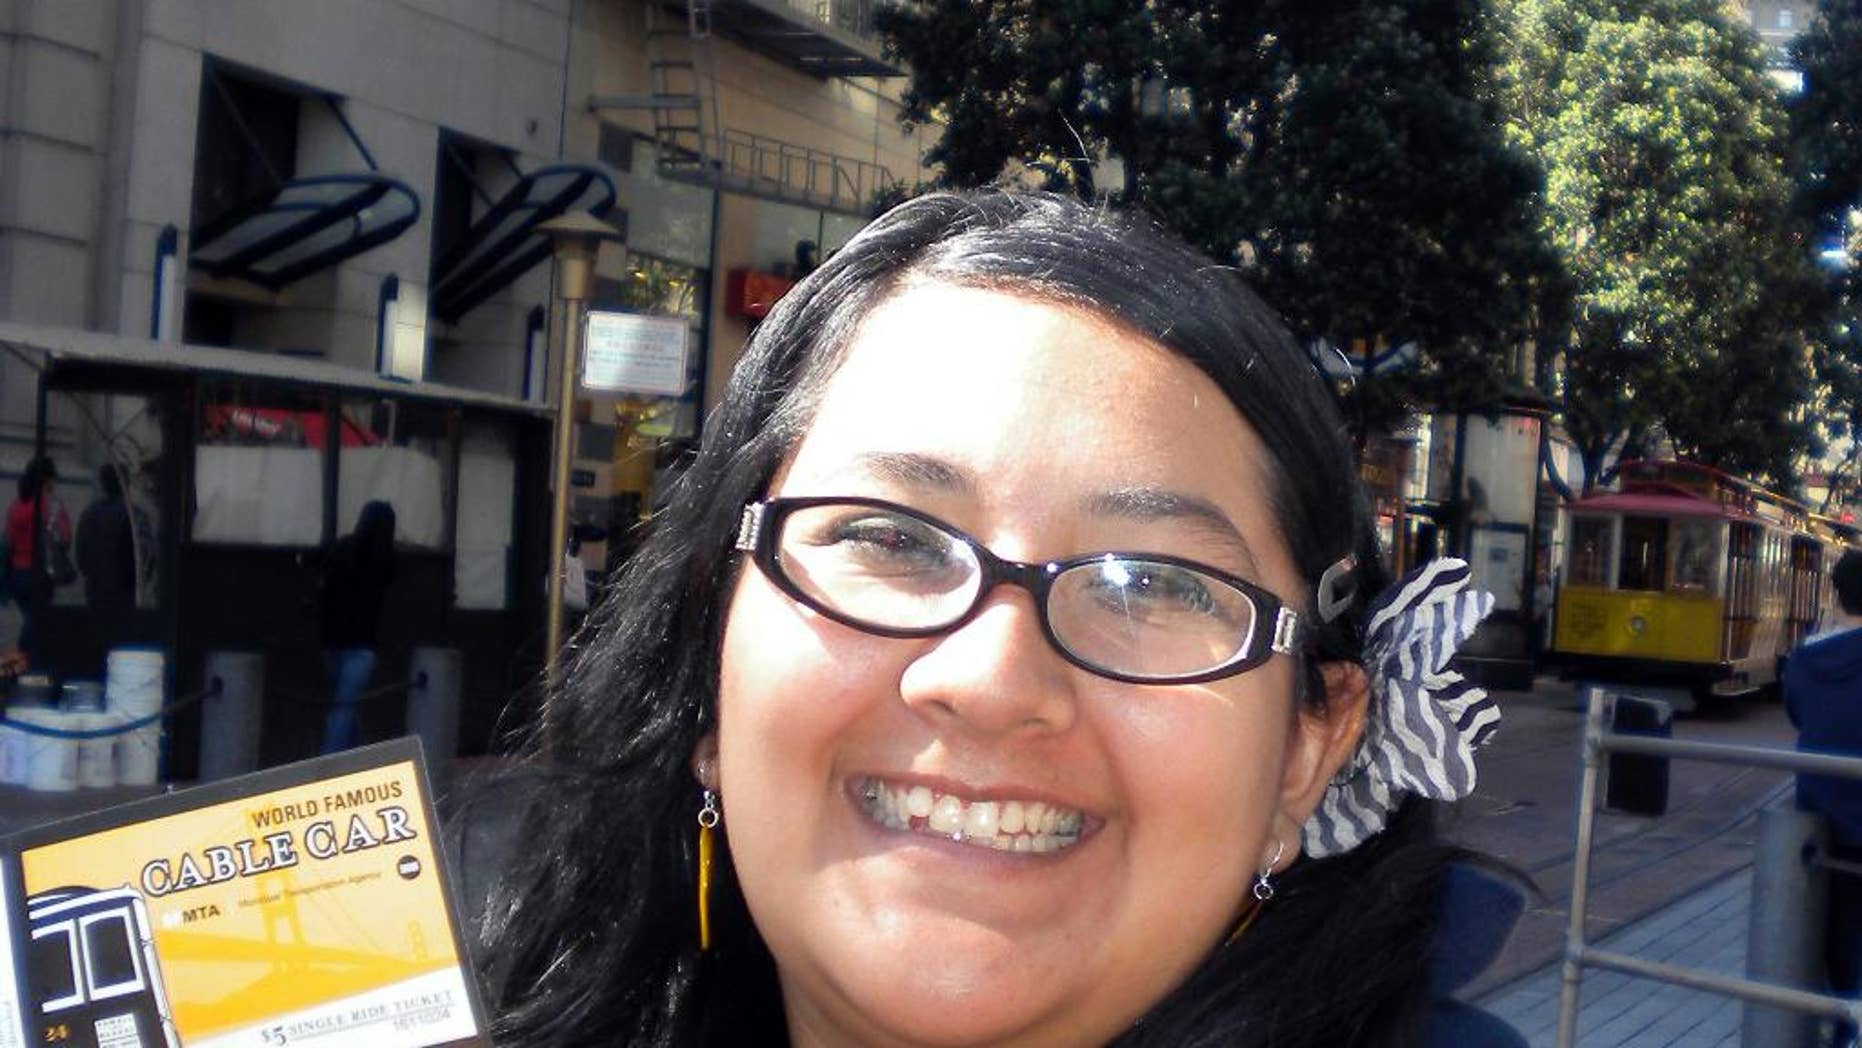 FILE - This undated file photo provided by Tatiana Ward shows Aurora Godoy during a trip to San Francisco. Godoy was killed during a Dec. 2, 2015, attack in San Bernardino, Calif. Los Angeles Harbor College says it will honor the memory of Godoy by awarding her a posthumous degree recognizing her as a member of its Class of 2016 during a board of trustees meeting Wednesday, May 11, 2016. (Tatiana Ward via AP, File)